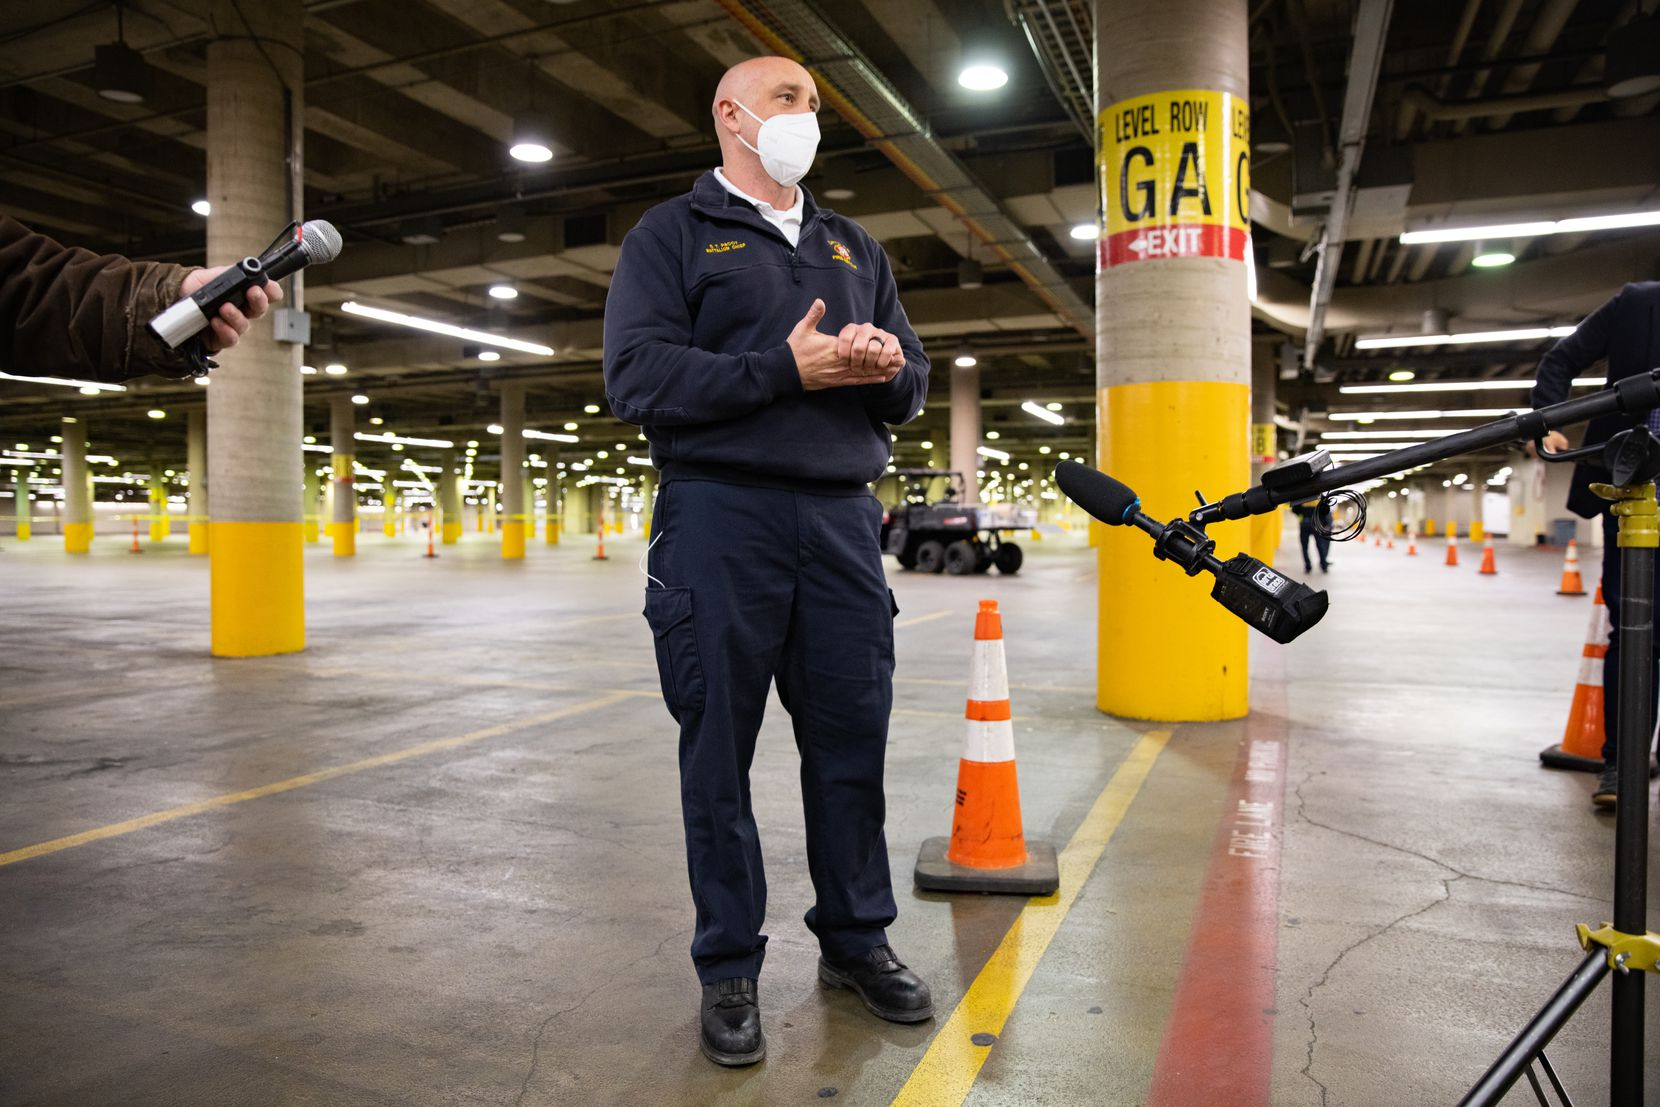 Scott Pacot, Battalion Chief with Dallas Fire-Rescue, talks to the media about the drive-up vaccination site at the Kay Bailey Hutchison Convention Center in Dallas on Wednesday, Jan. 27, 2021. (Juan Figueroa/ The Dallas Morning News)